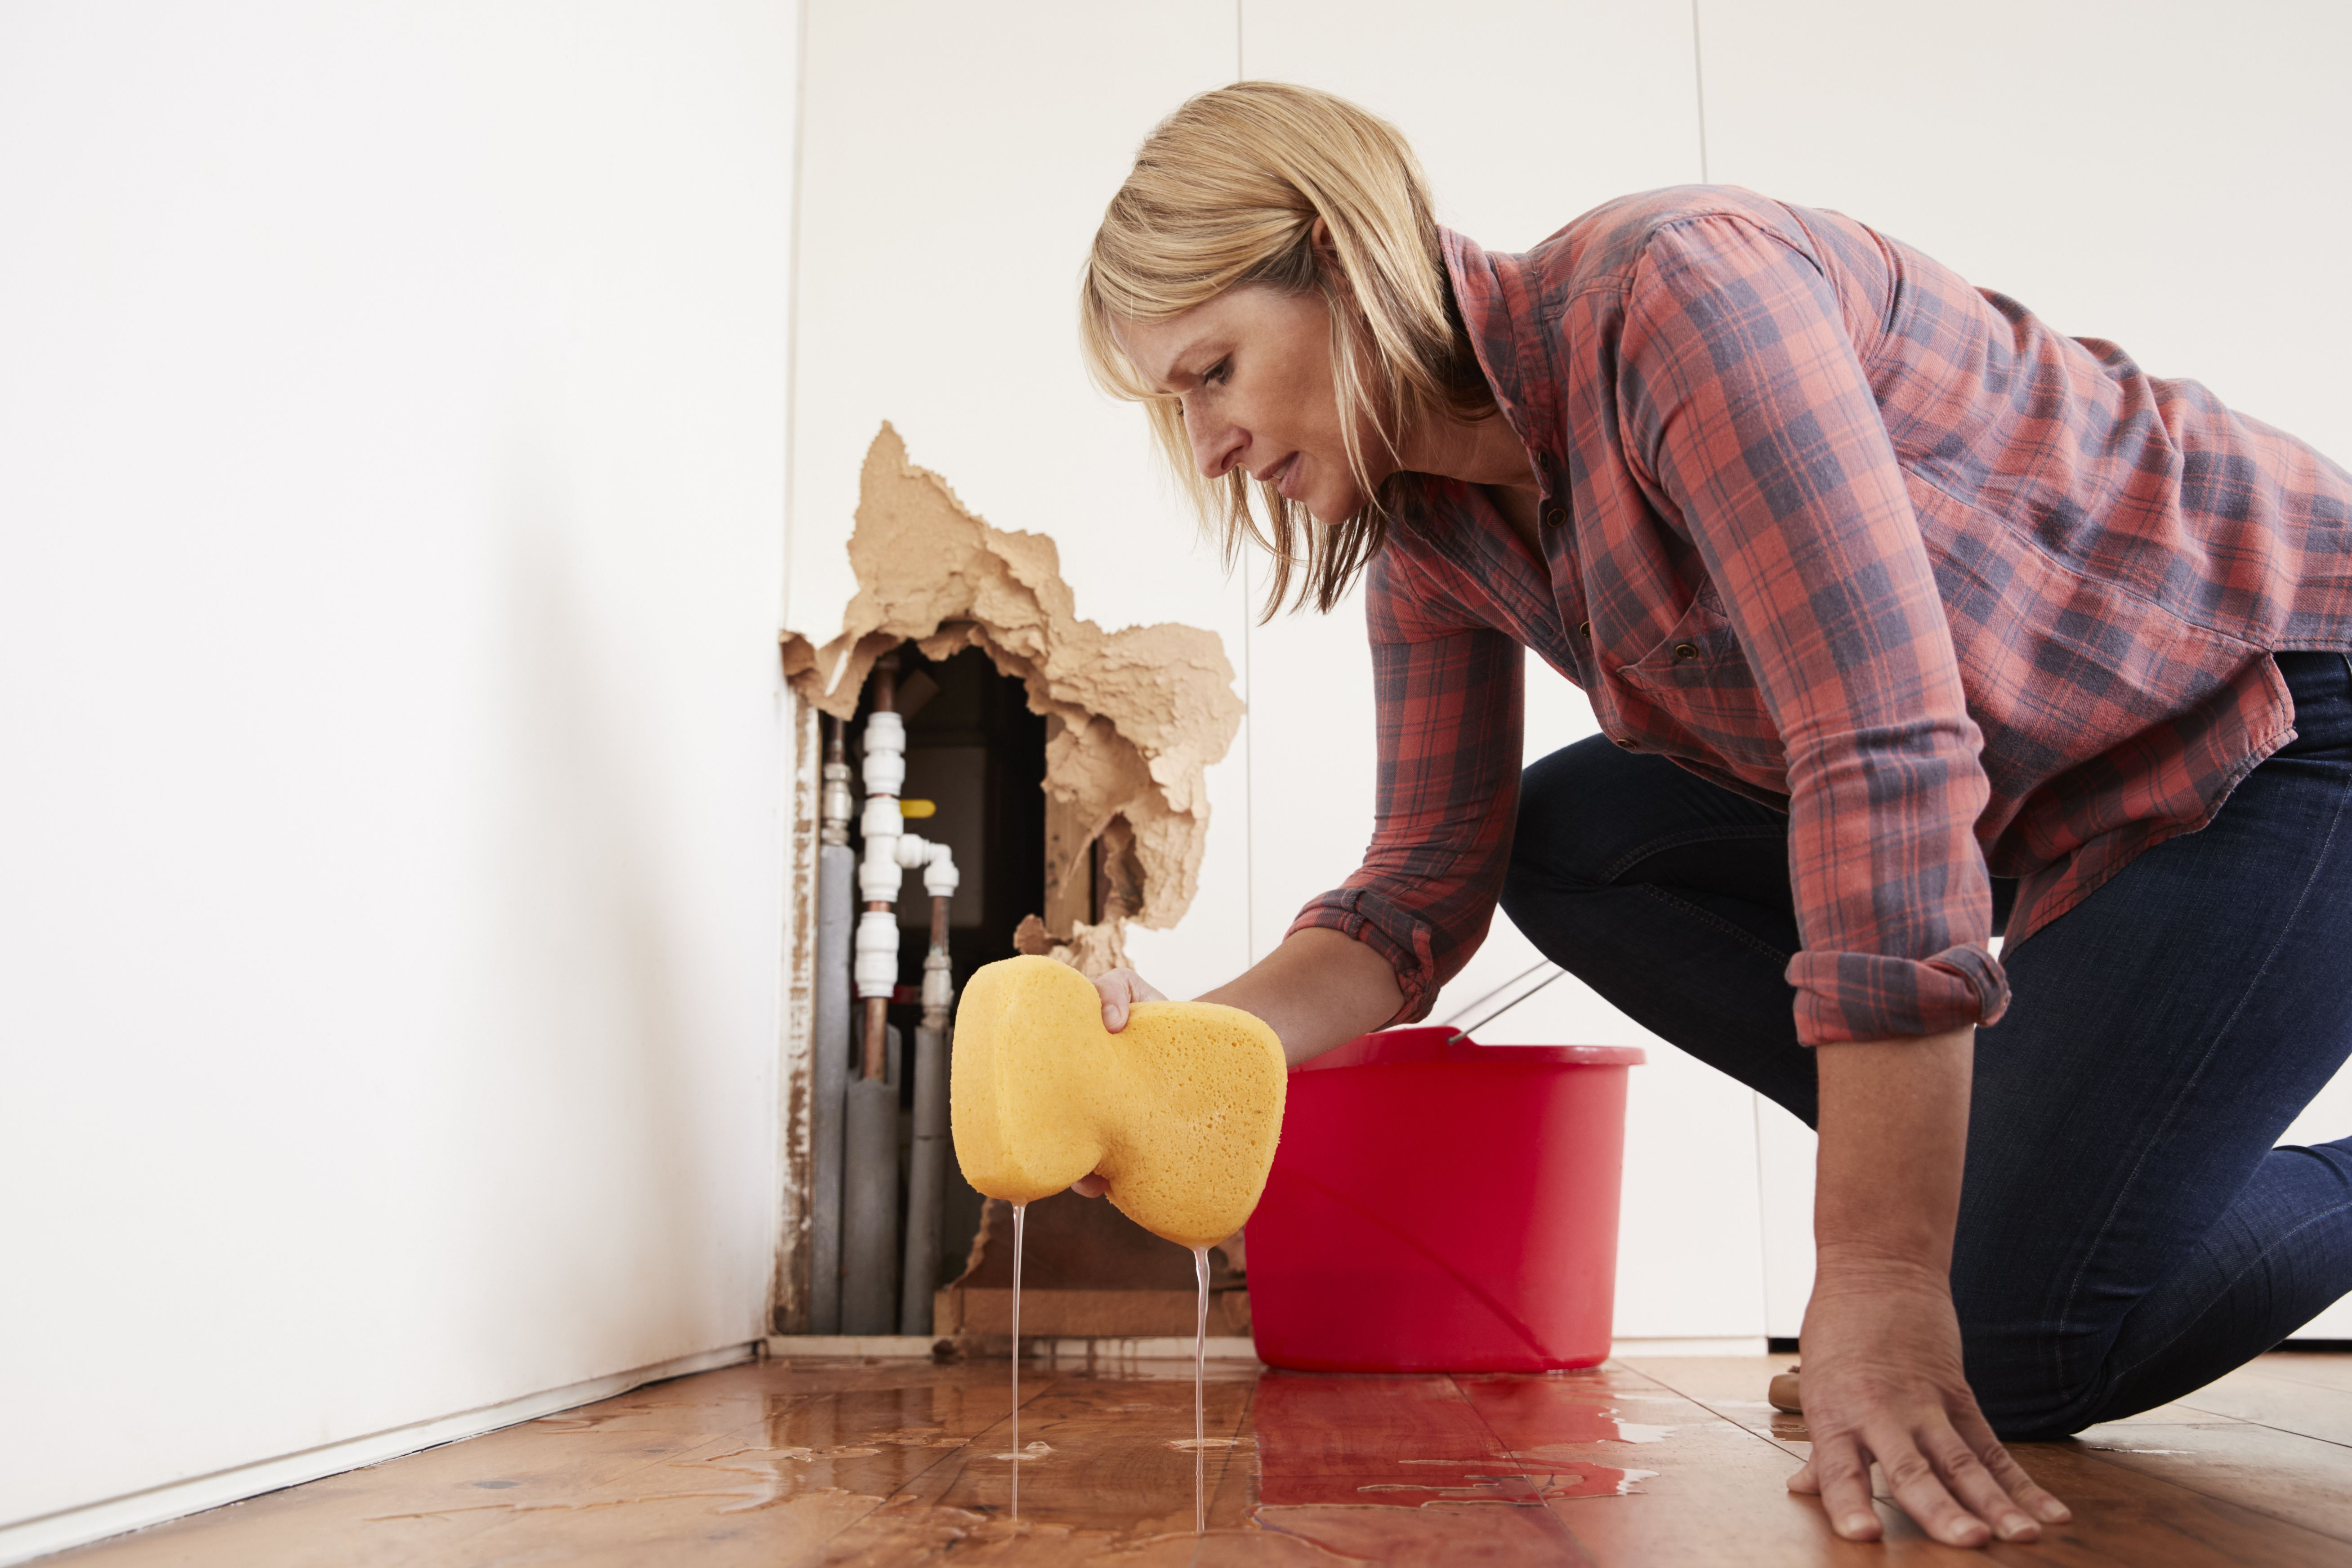 How To Keep Pipes From Freezing Plumbing emergency